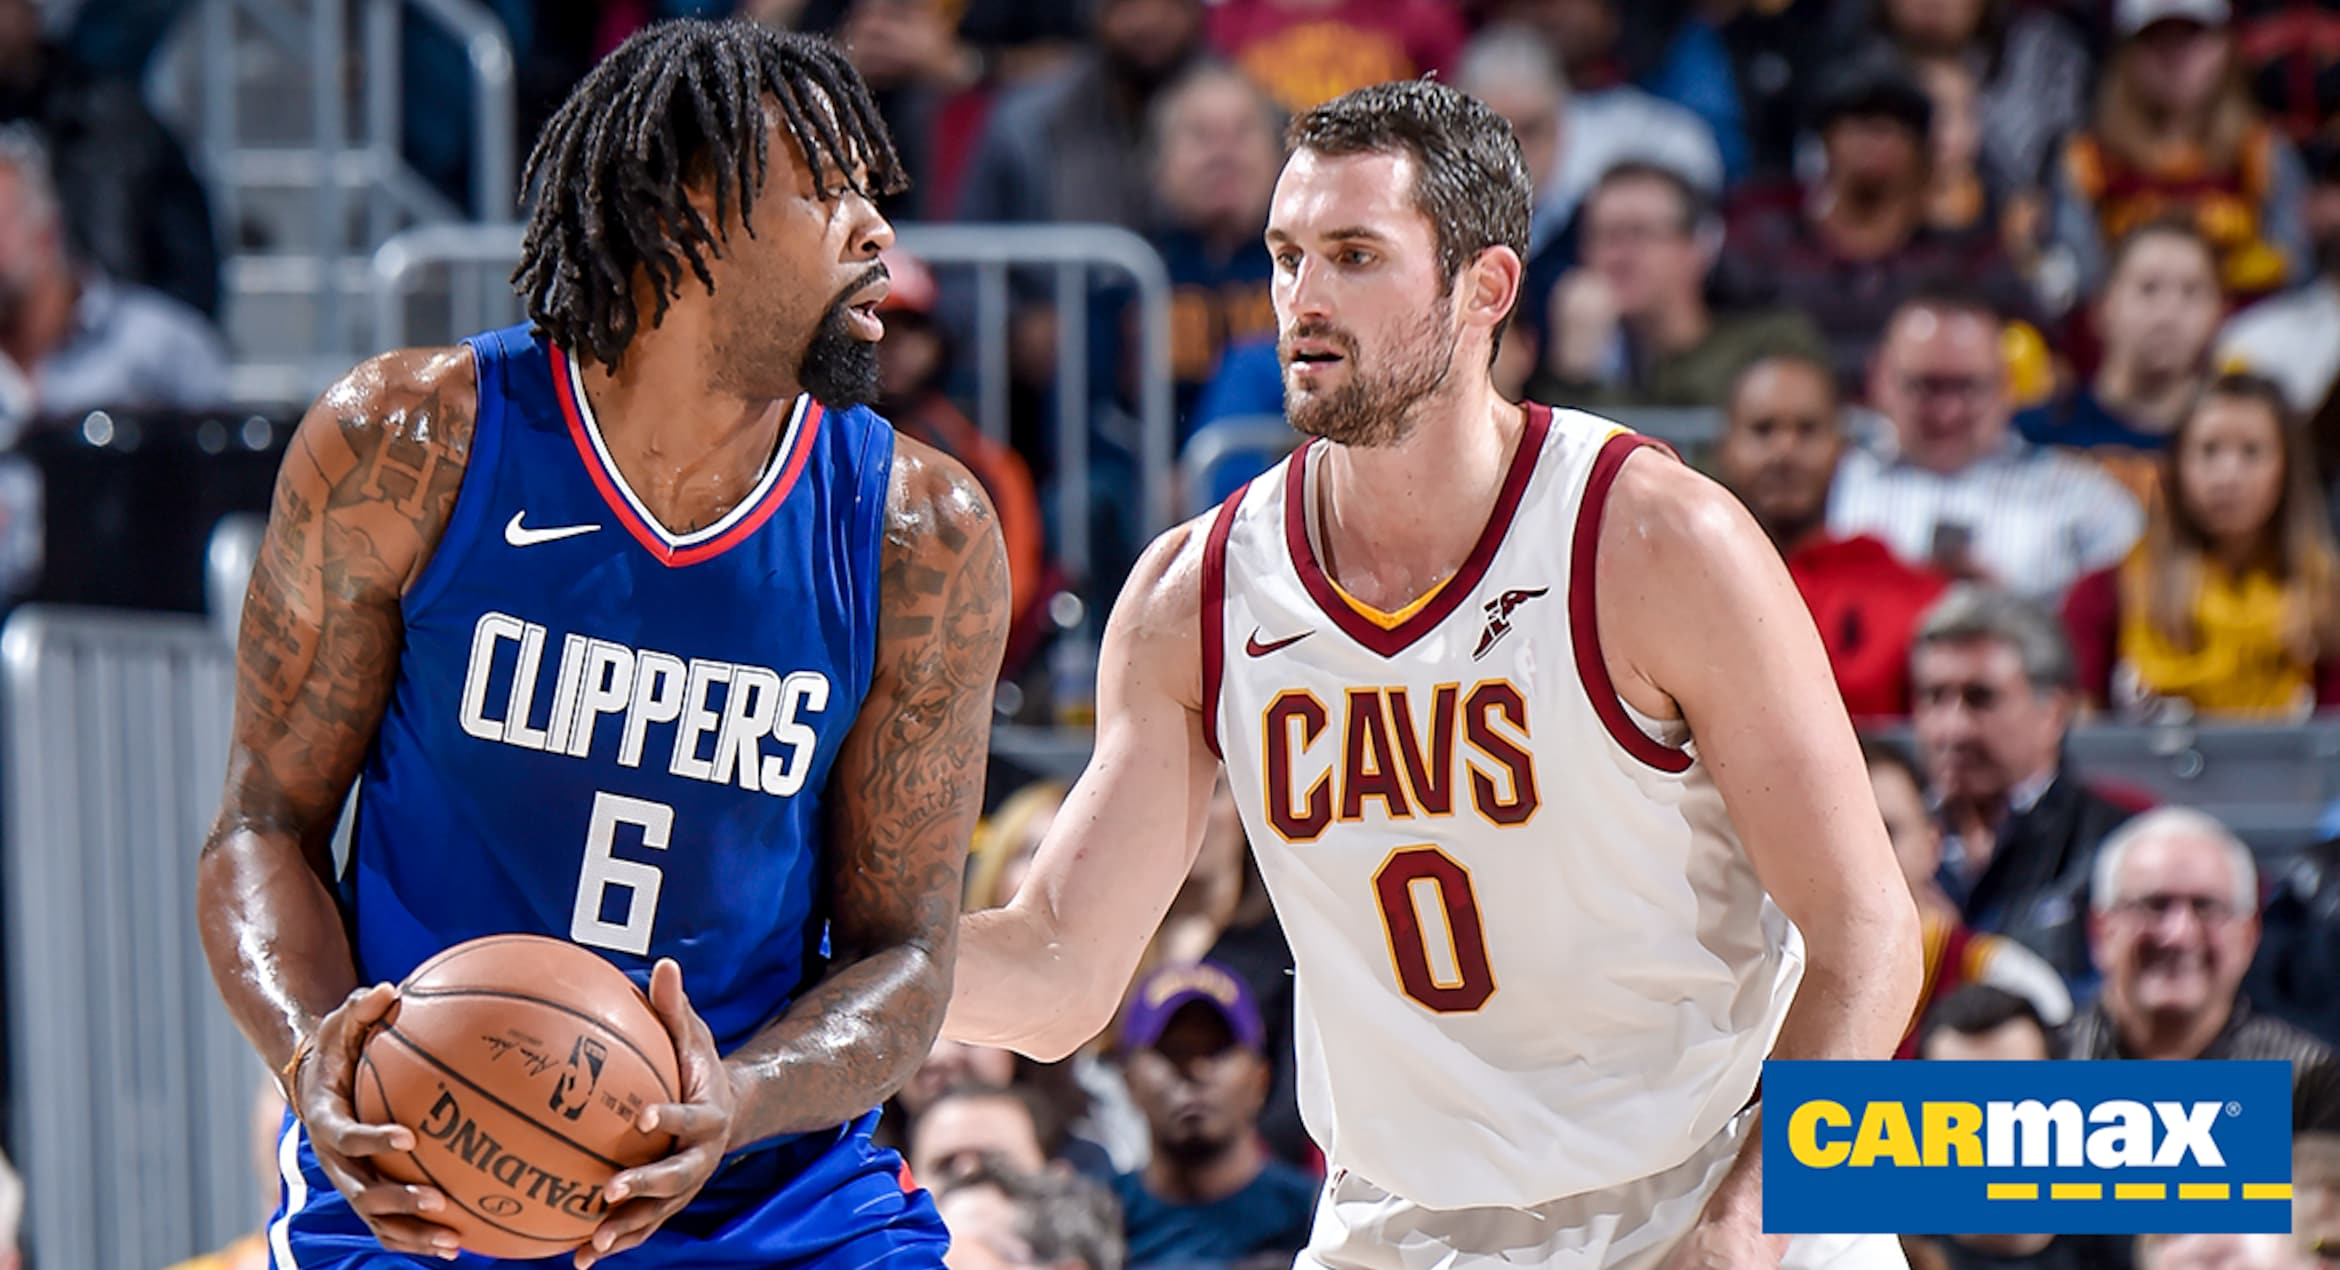 Gameday Report: Clippers host LeBron, Cavs in first game of back-to-back